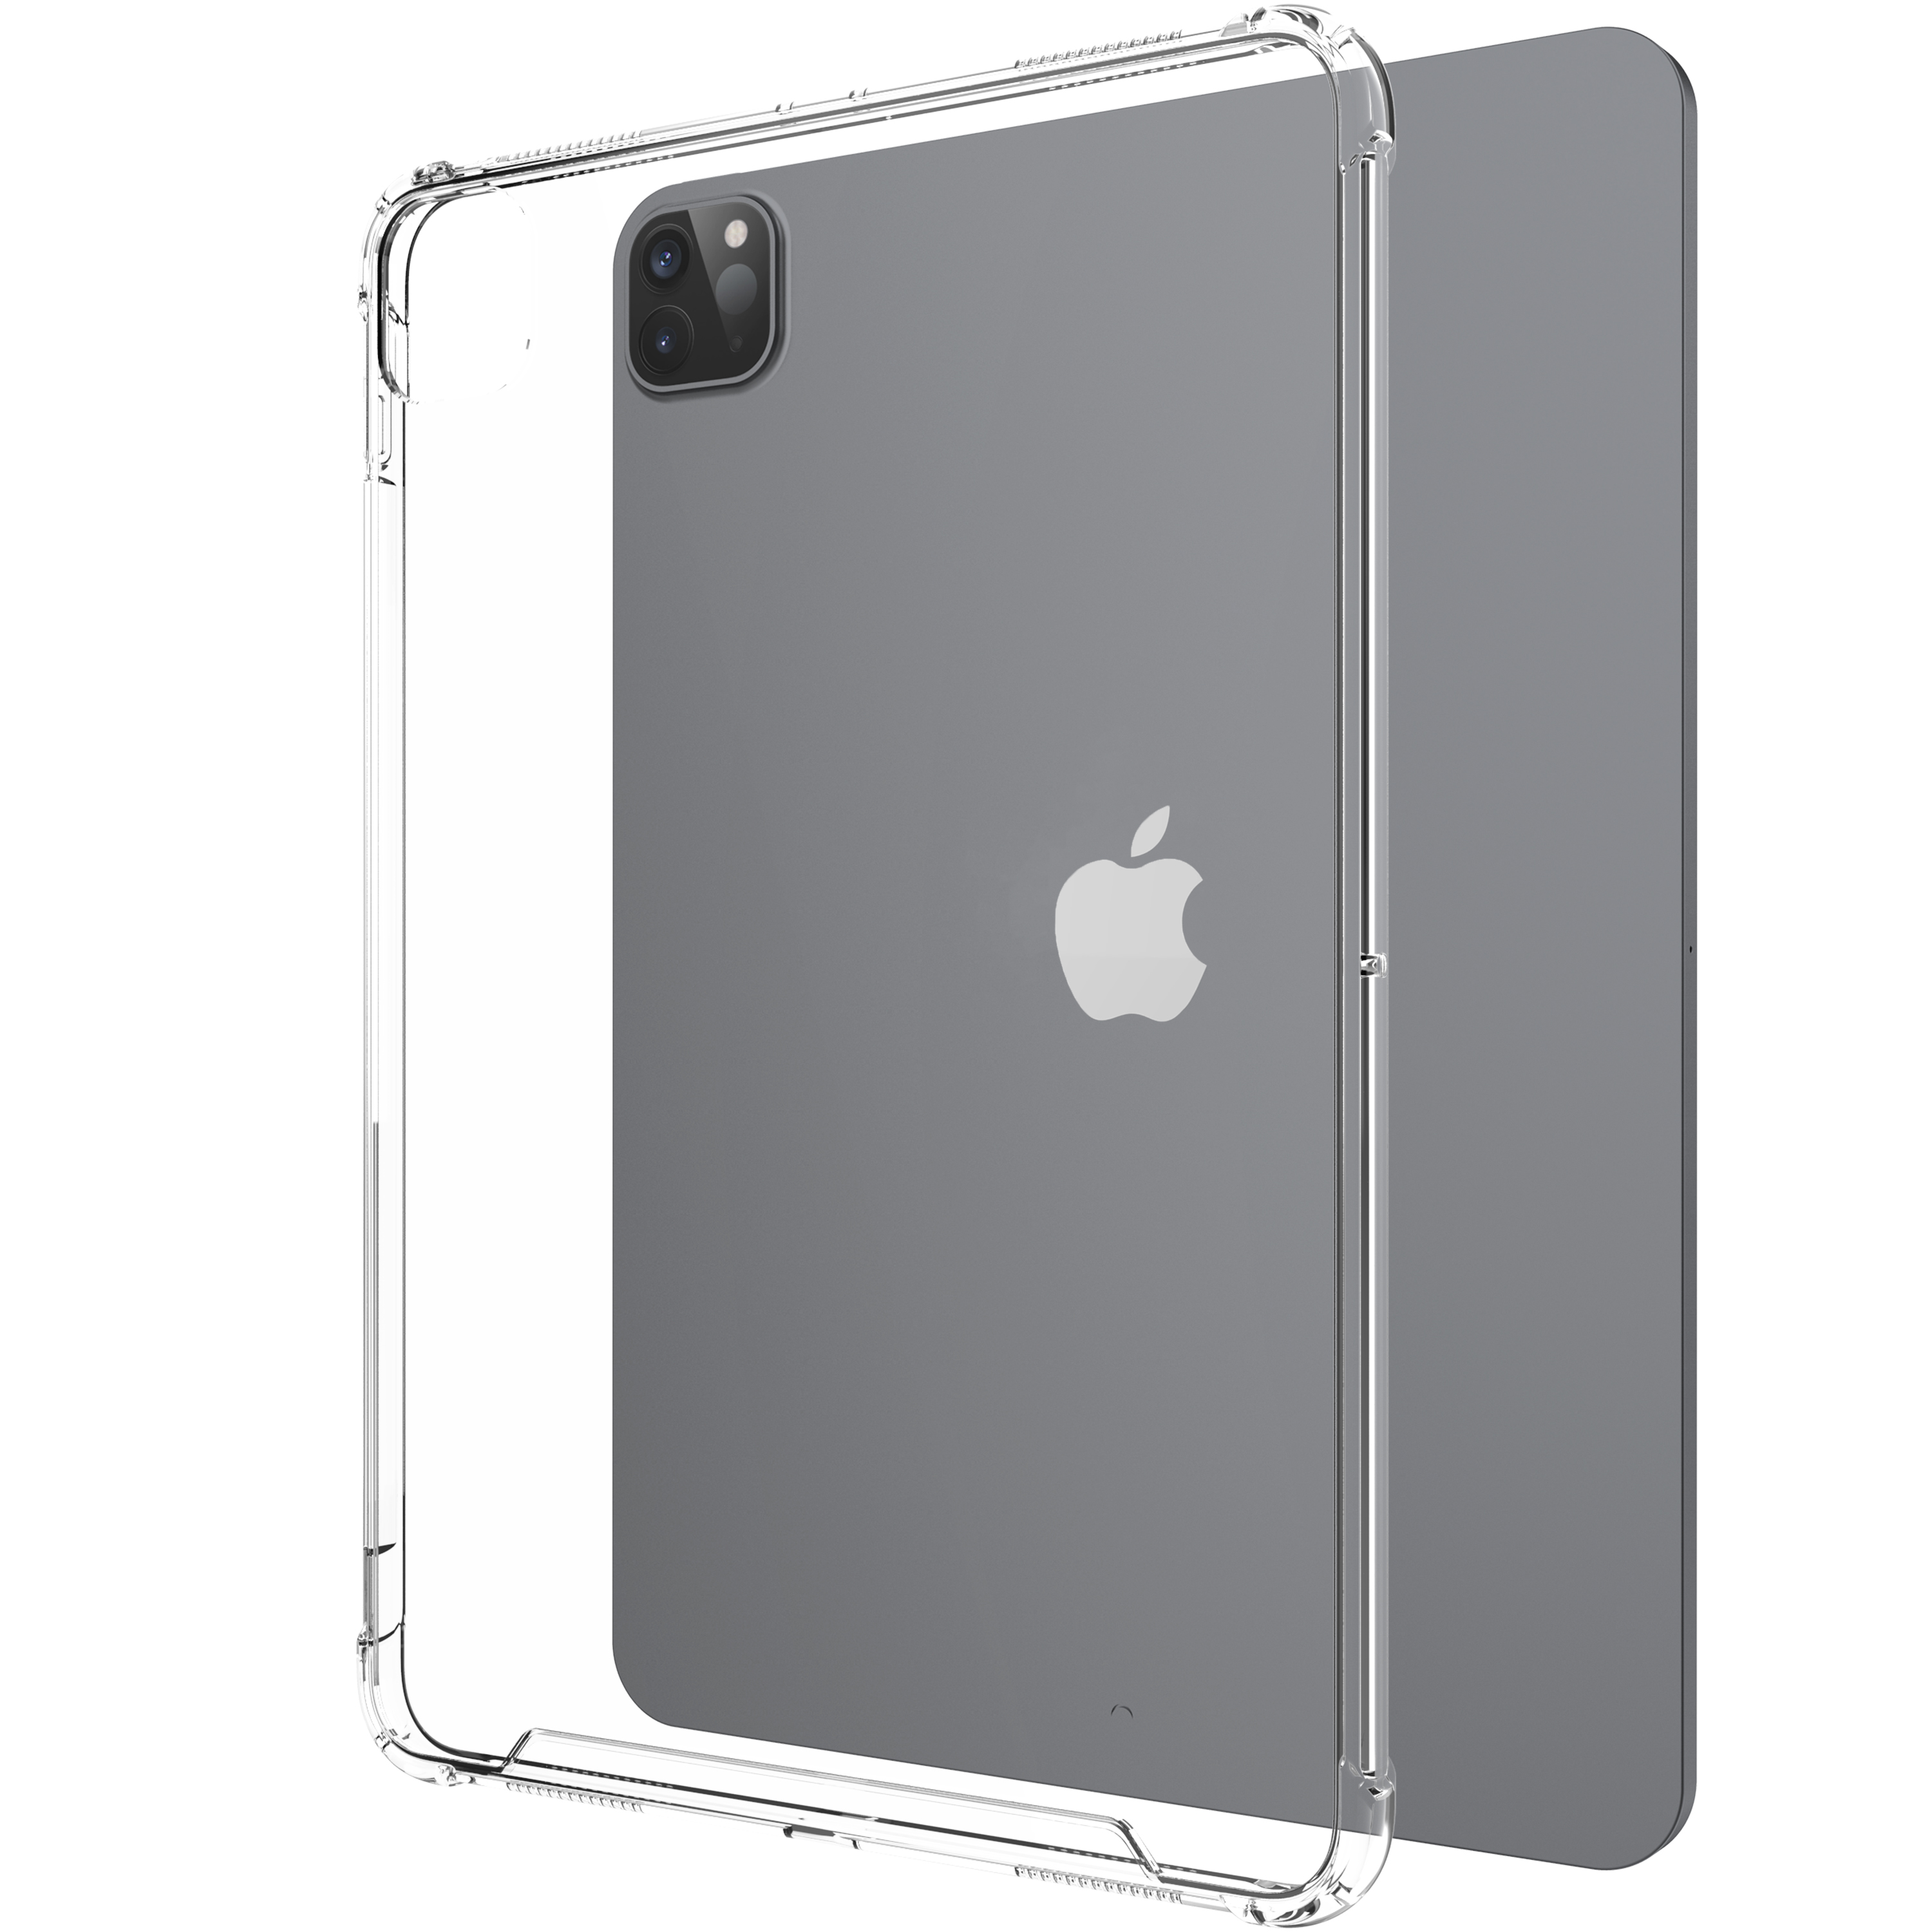 CLEARVIEW Case for iPad Pro 12.9 Case 2020 Clear View with ...